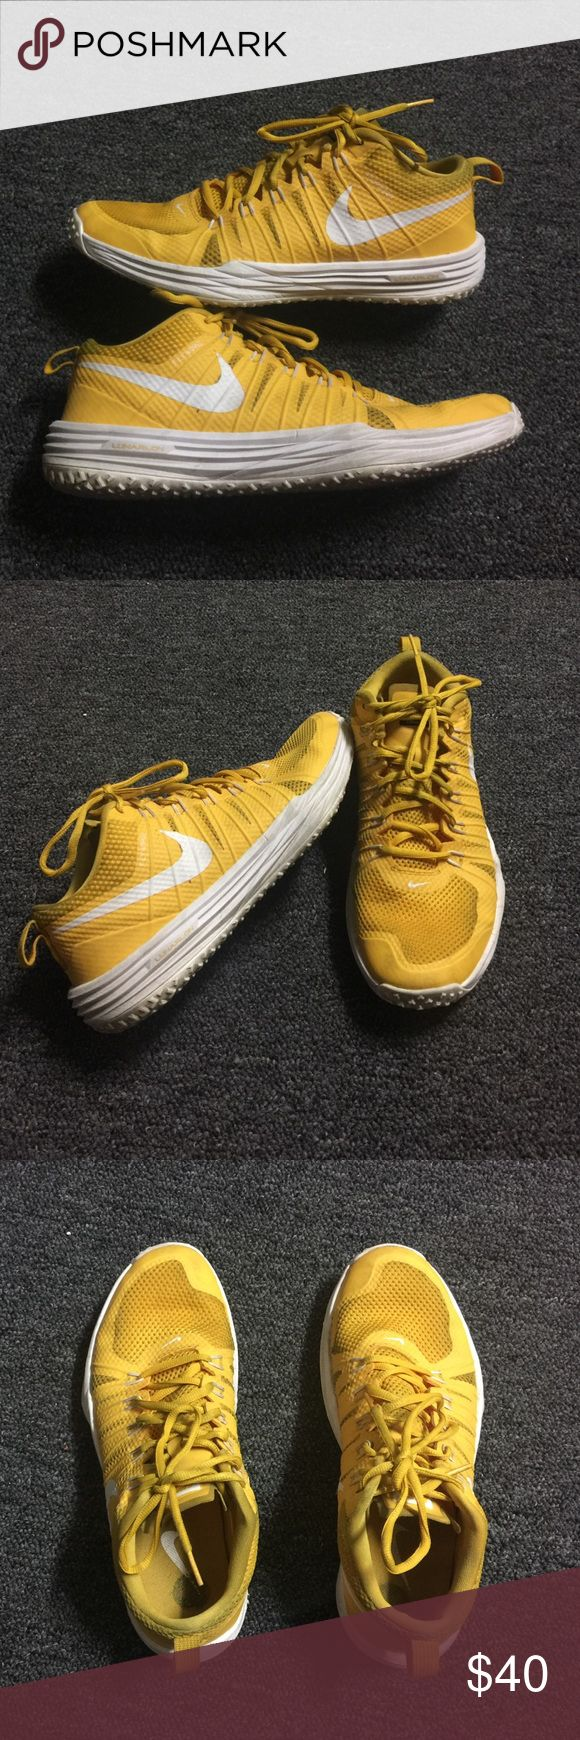 Nike lunar tr1 Used, in good condition no tears or rips. Good shoes for training and lifting weights! Nike Shoes Athletic Shoes